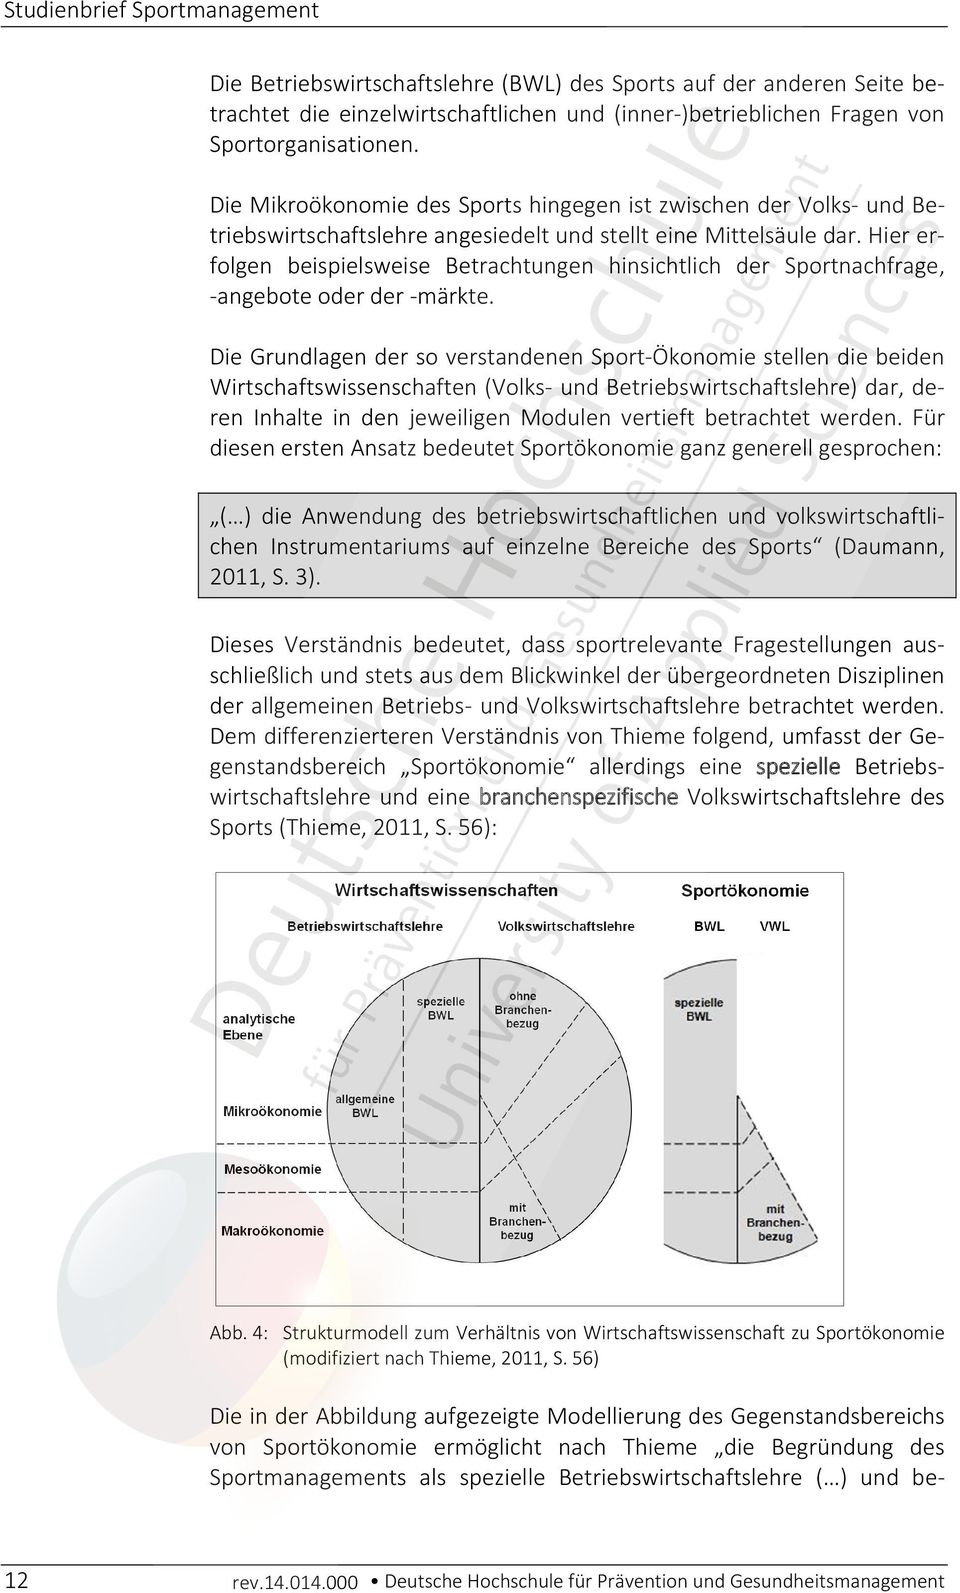 Studienbrief Sportmanagement Pdf